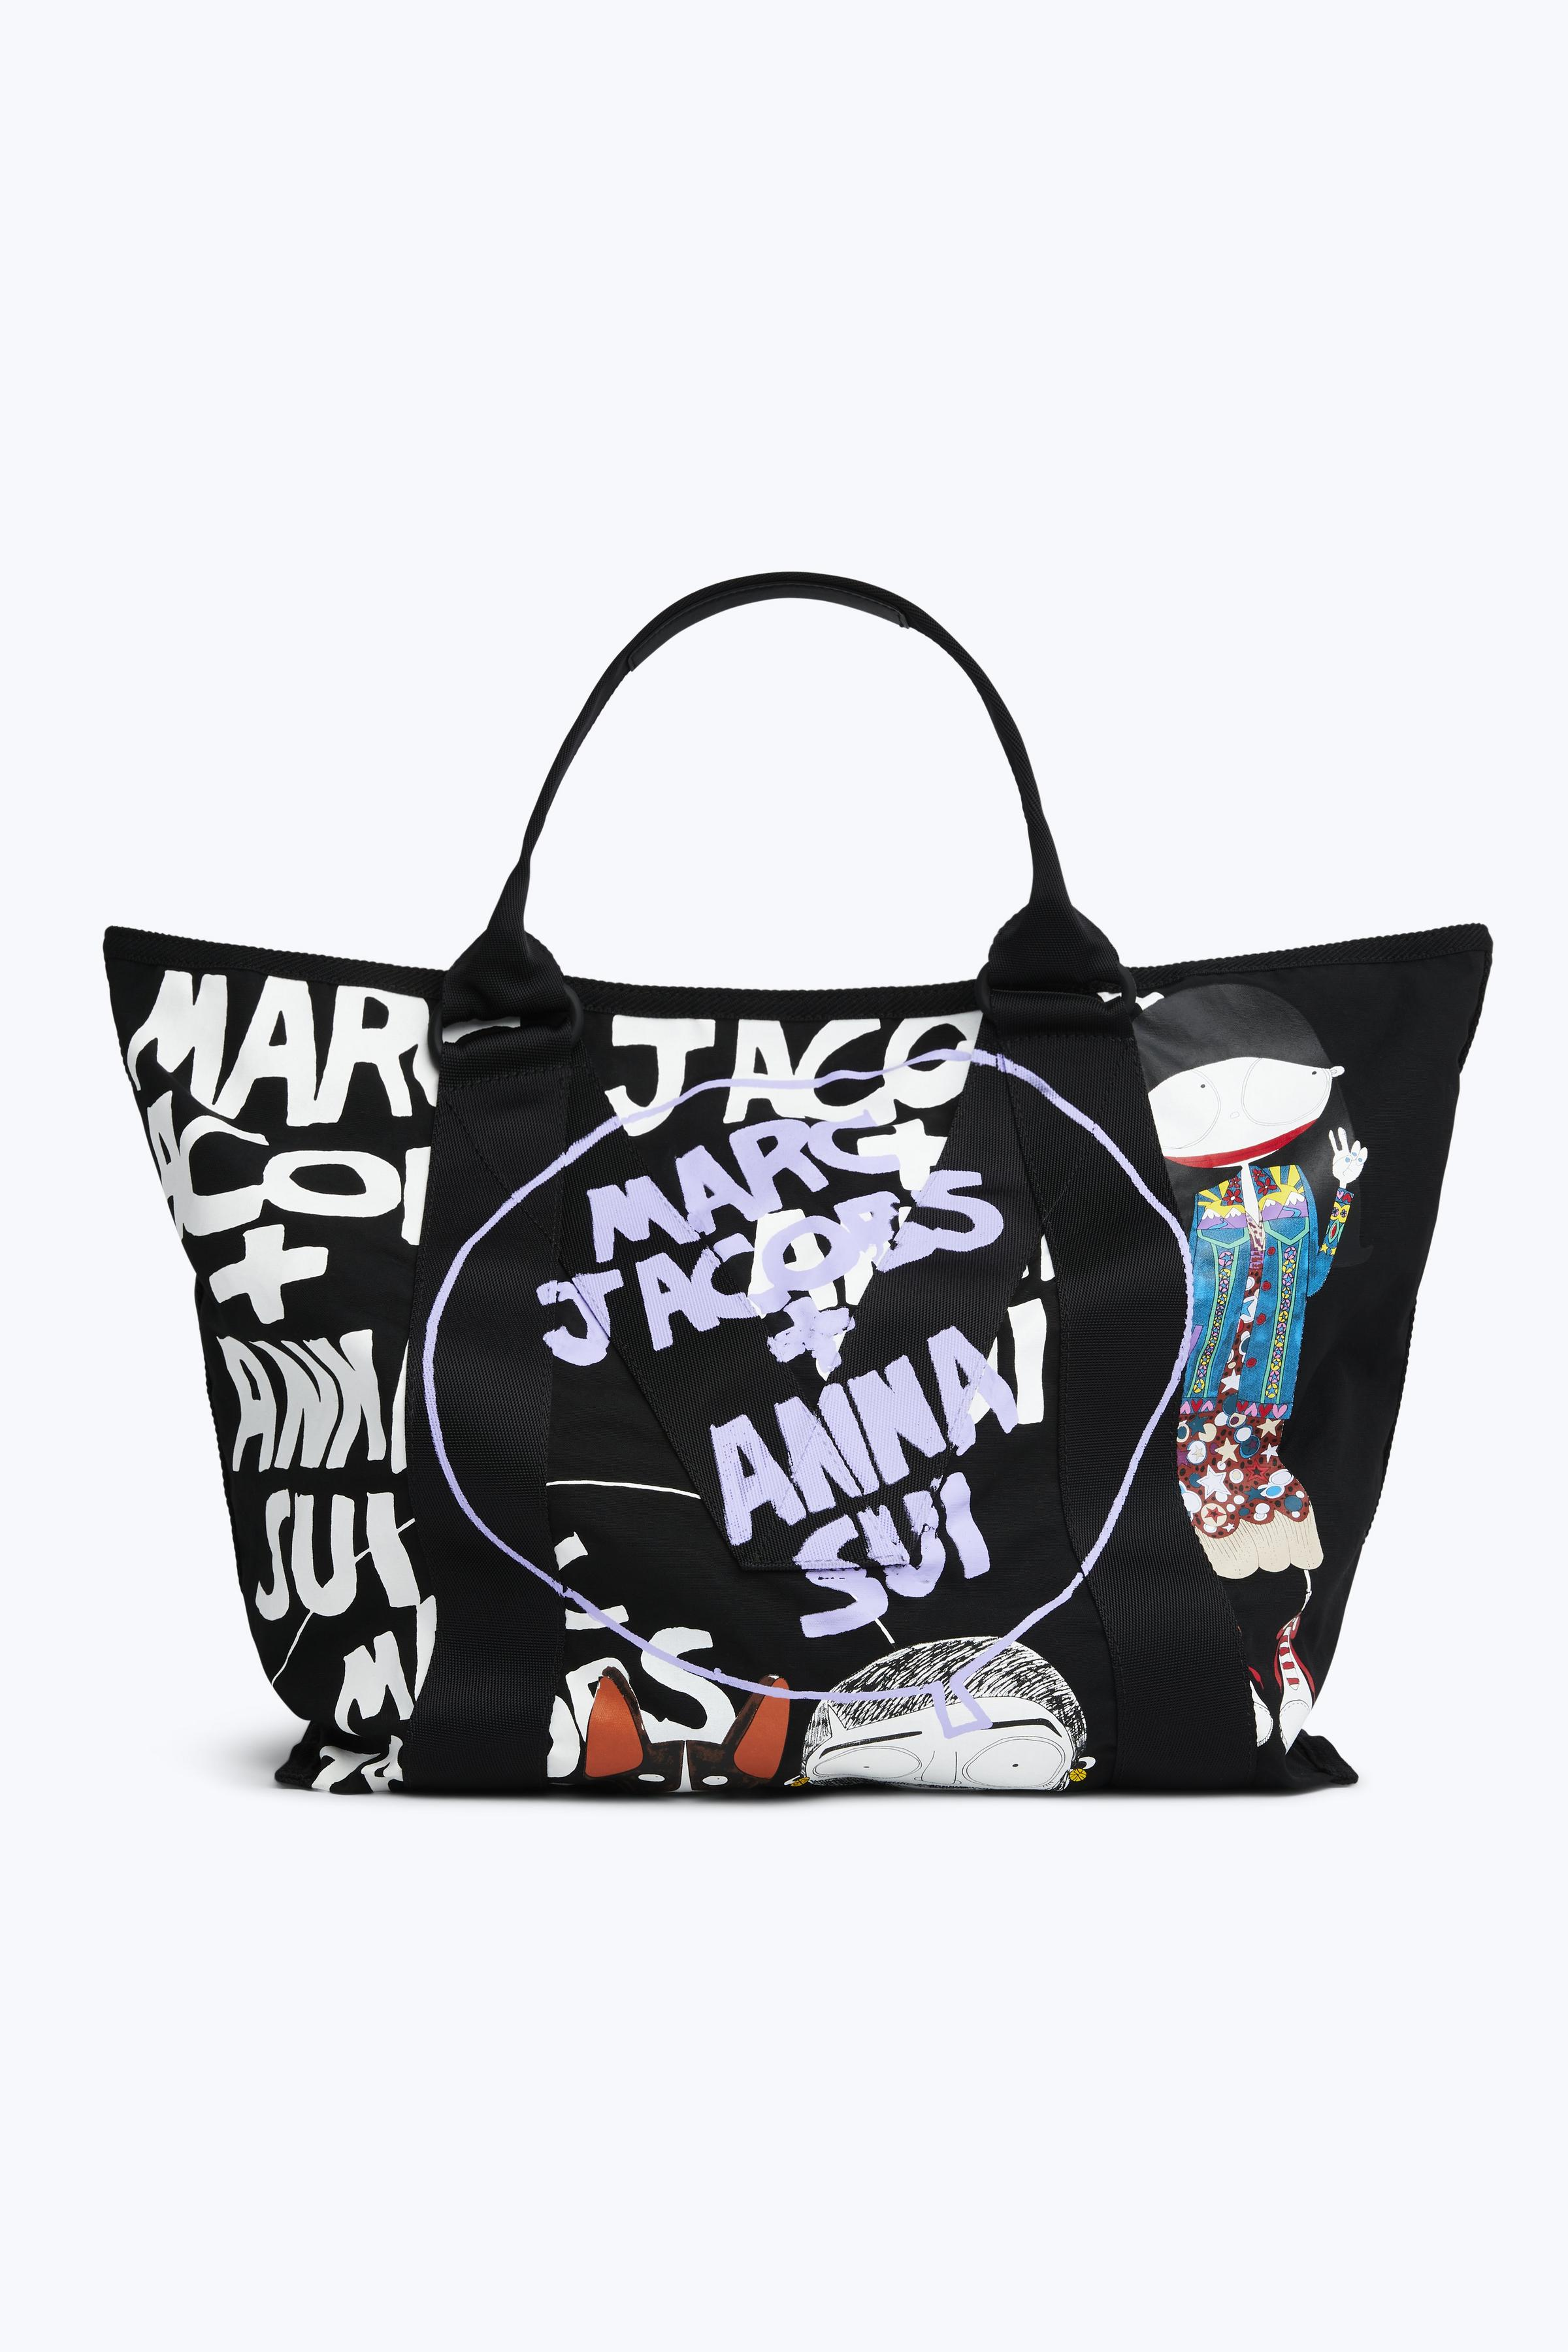 Marc Jacobs and Anna Sui